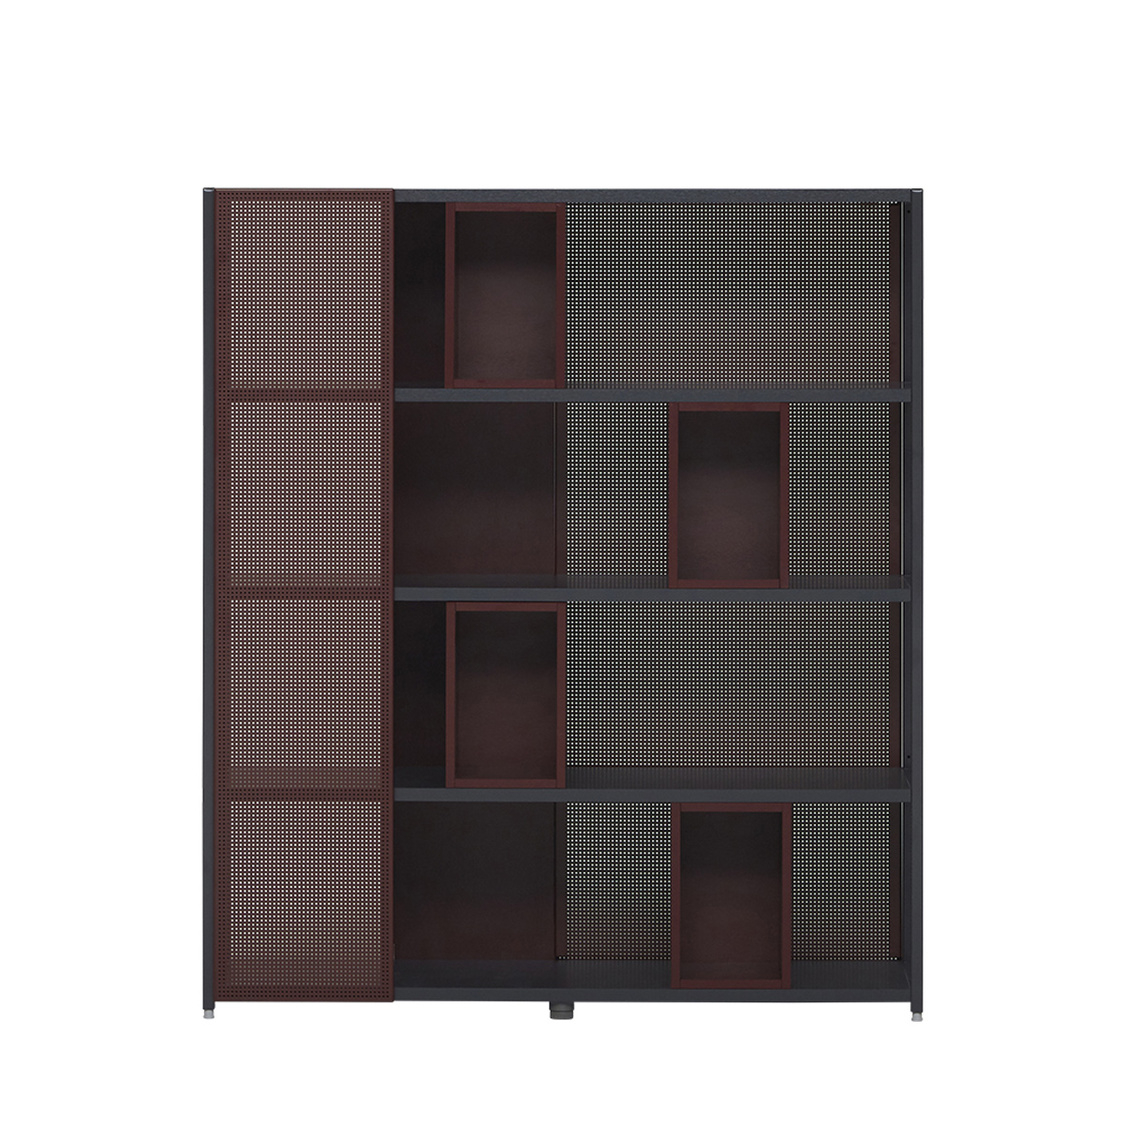 GLEN STUDIO 1200W 4-story Partition HSPE124-FKFK